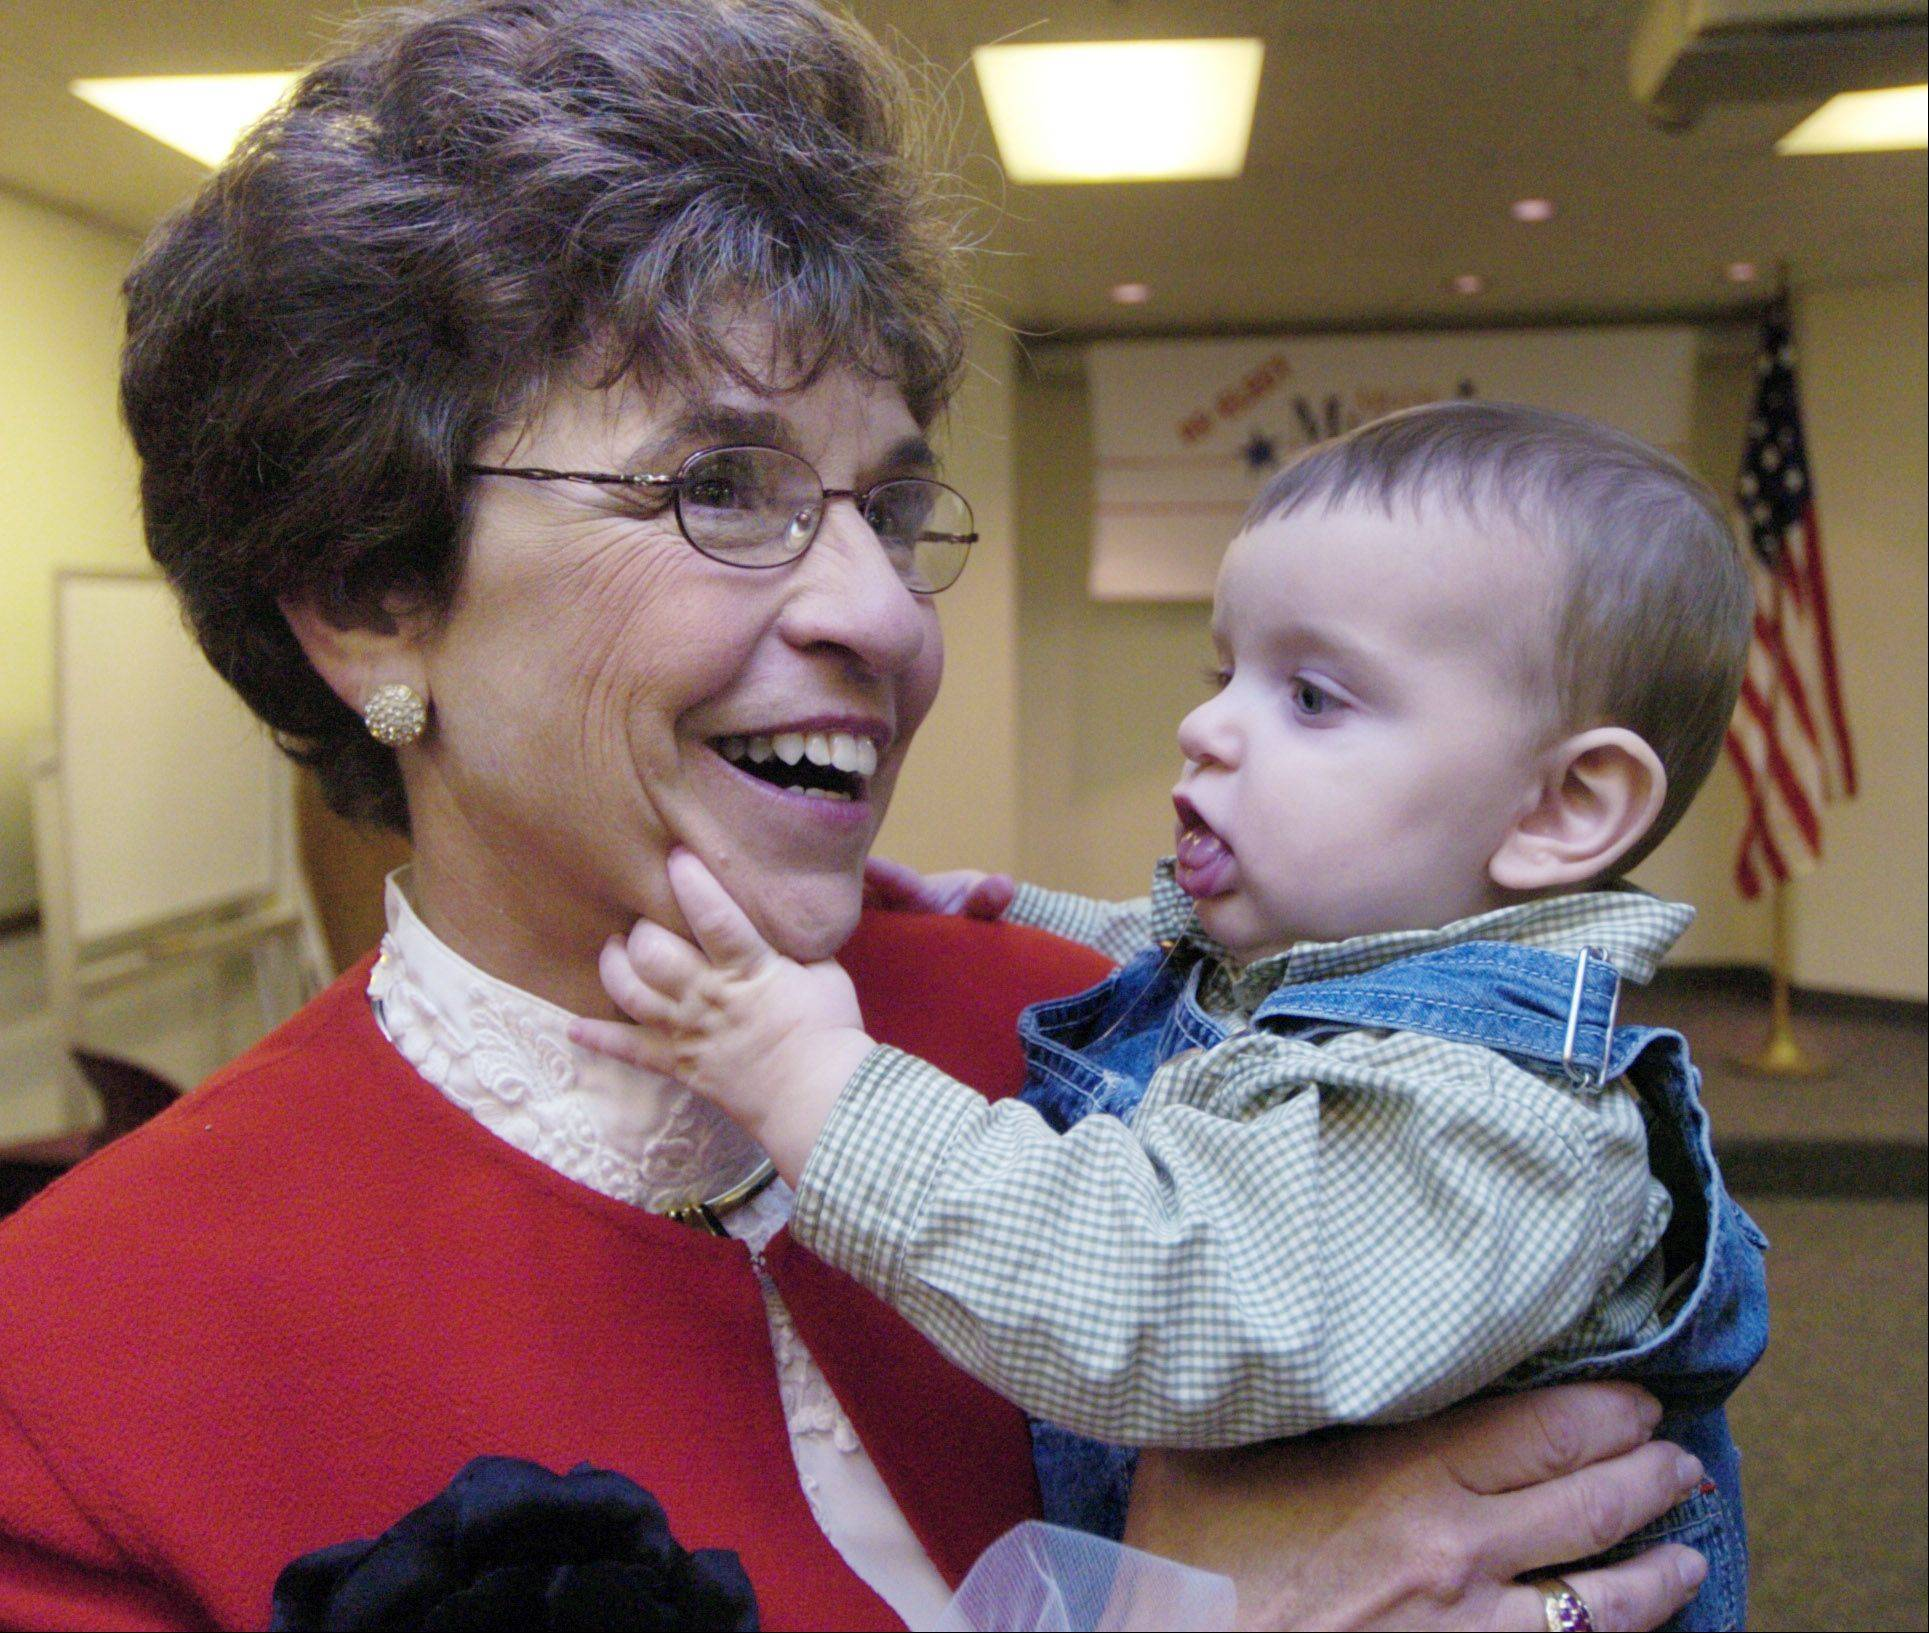 Arlene Mulder's 6-month-old grandson, Ethan, visits with her on Oct. 12, 2004 at the Arlington Heights Historical Society, where she announced she was running for a fourth term.